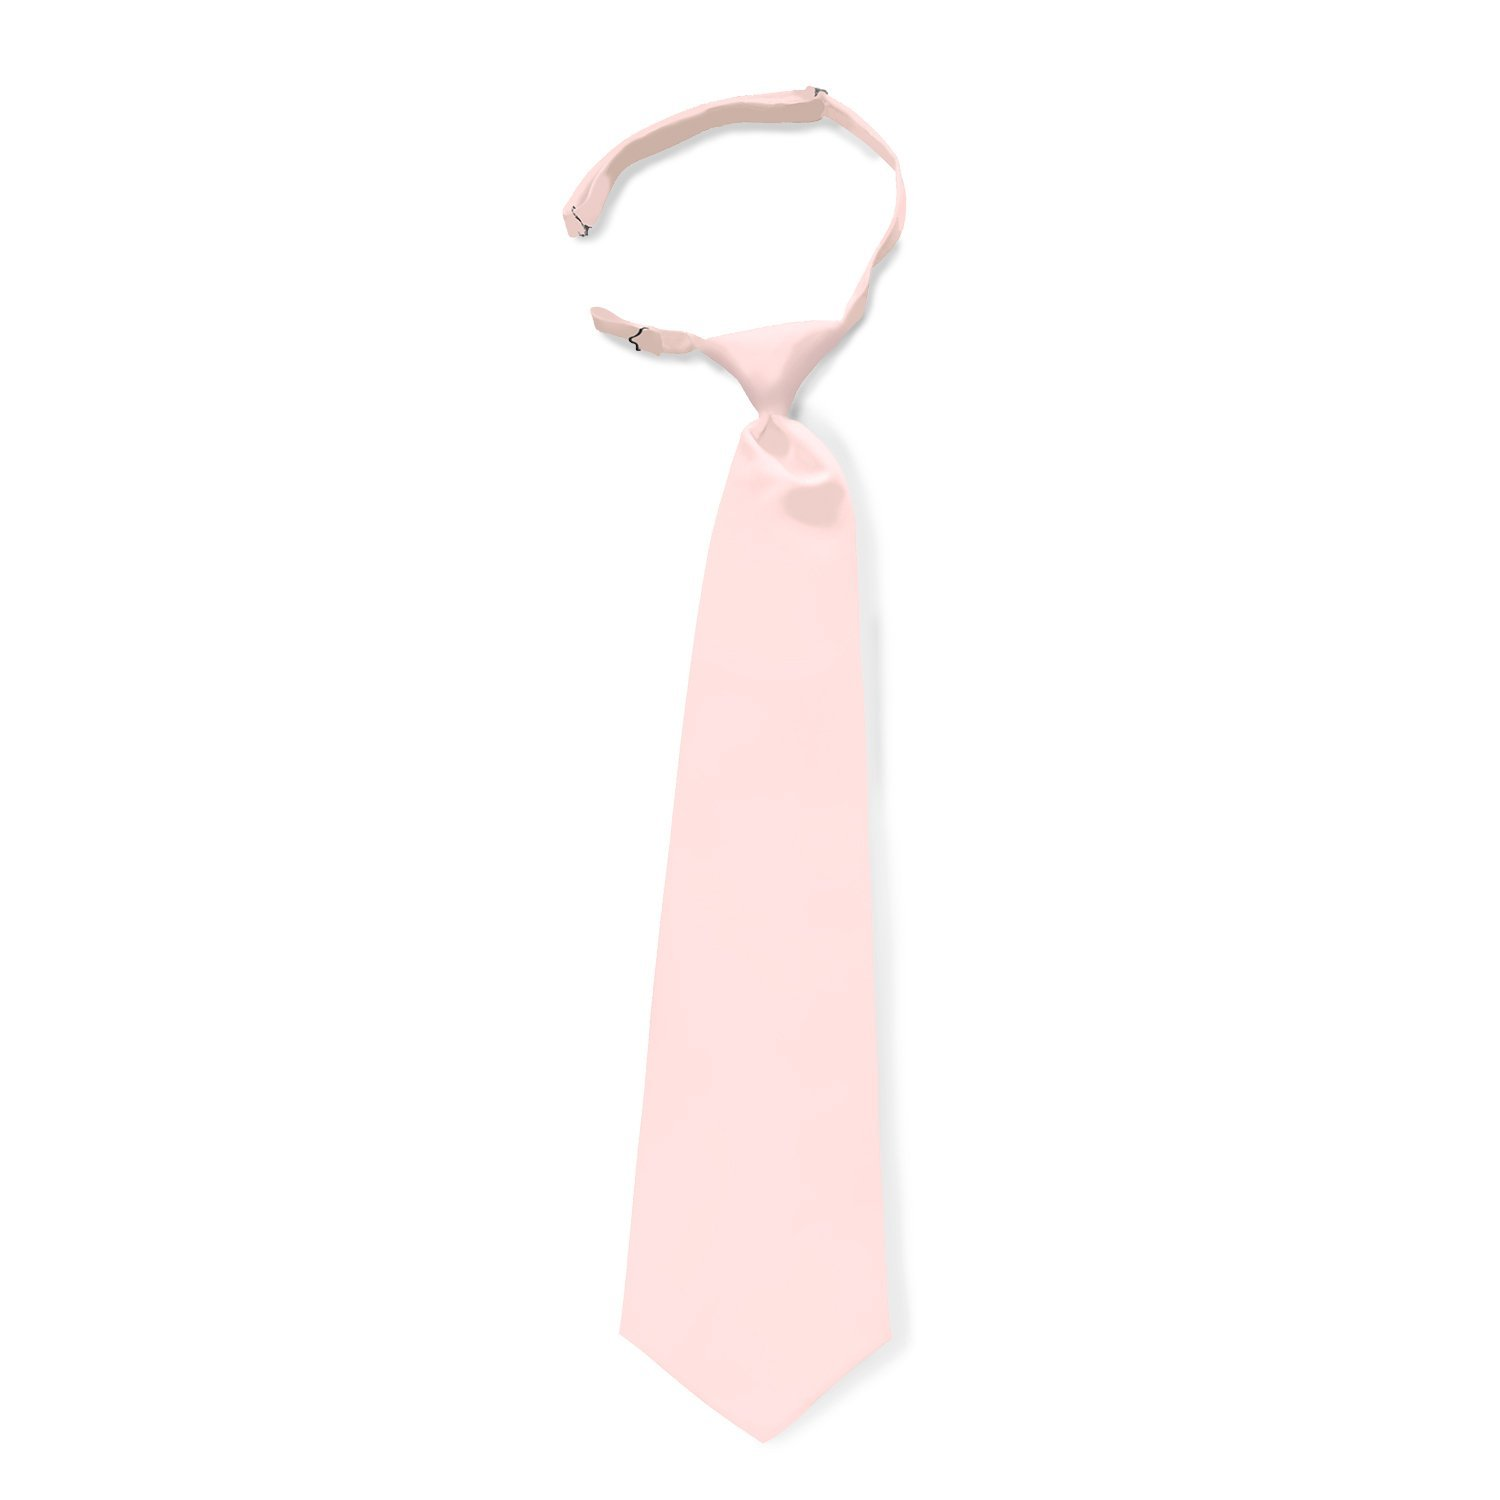 Satin Solid Color Pre-tied Neck Ties